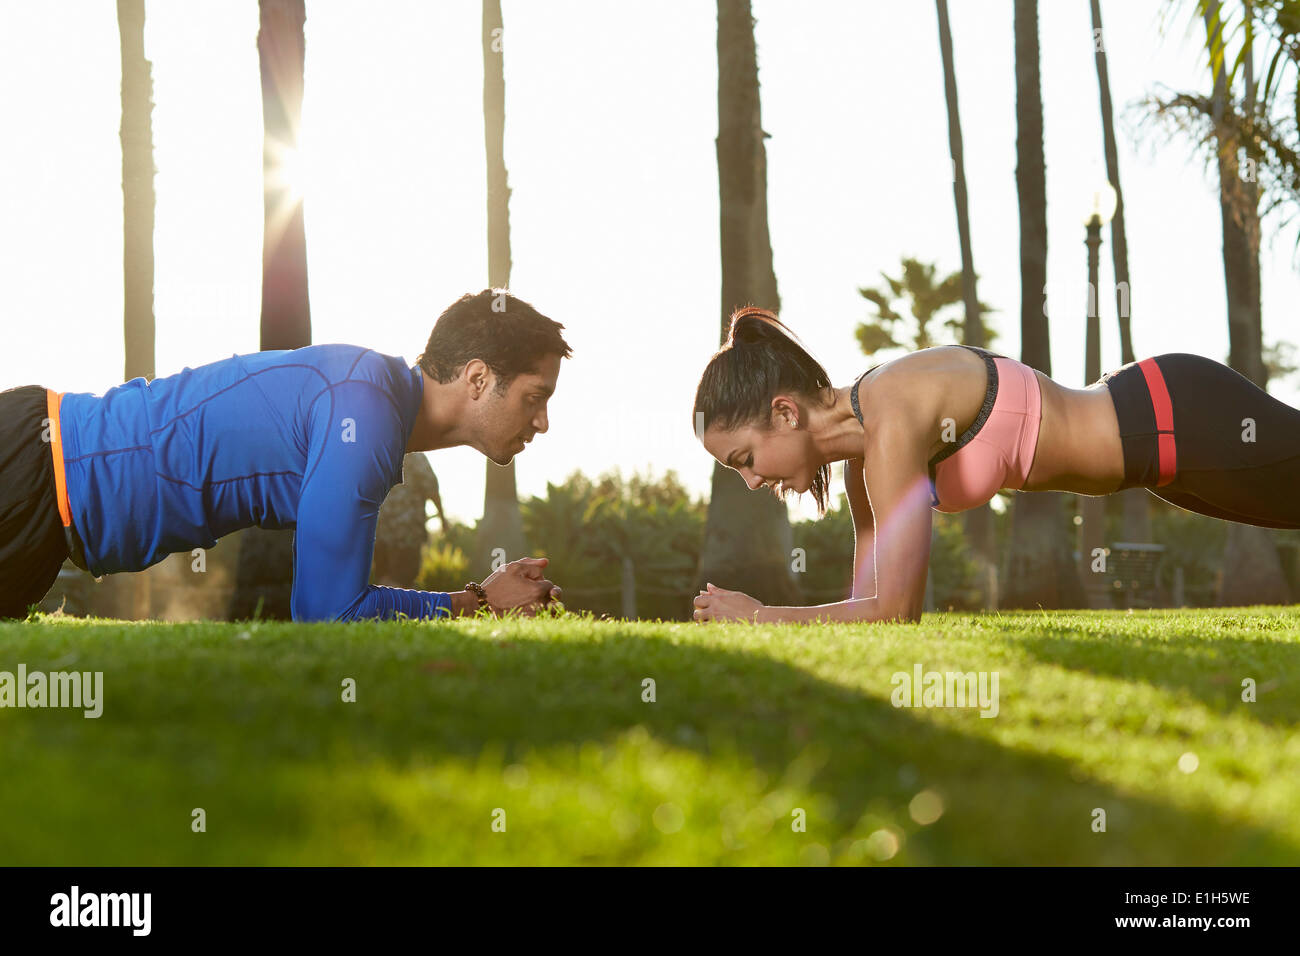 Man and woman doing plank exercise - Stock Image